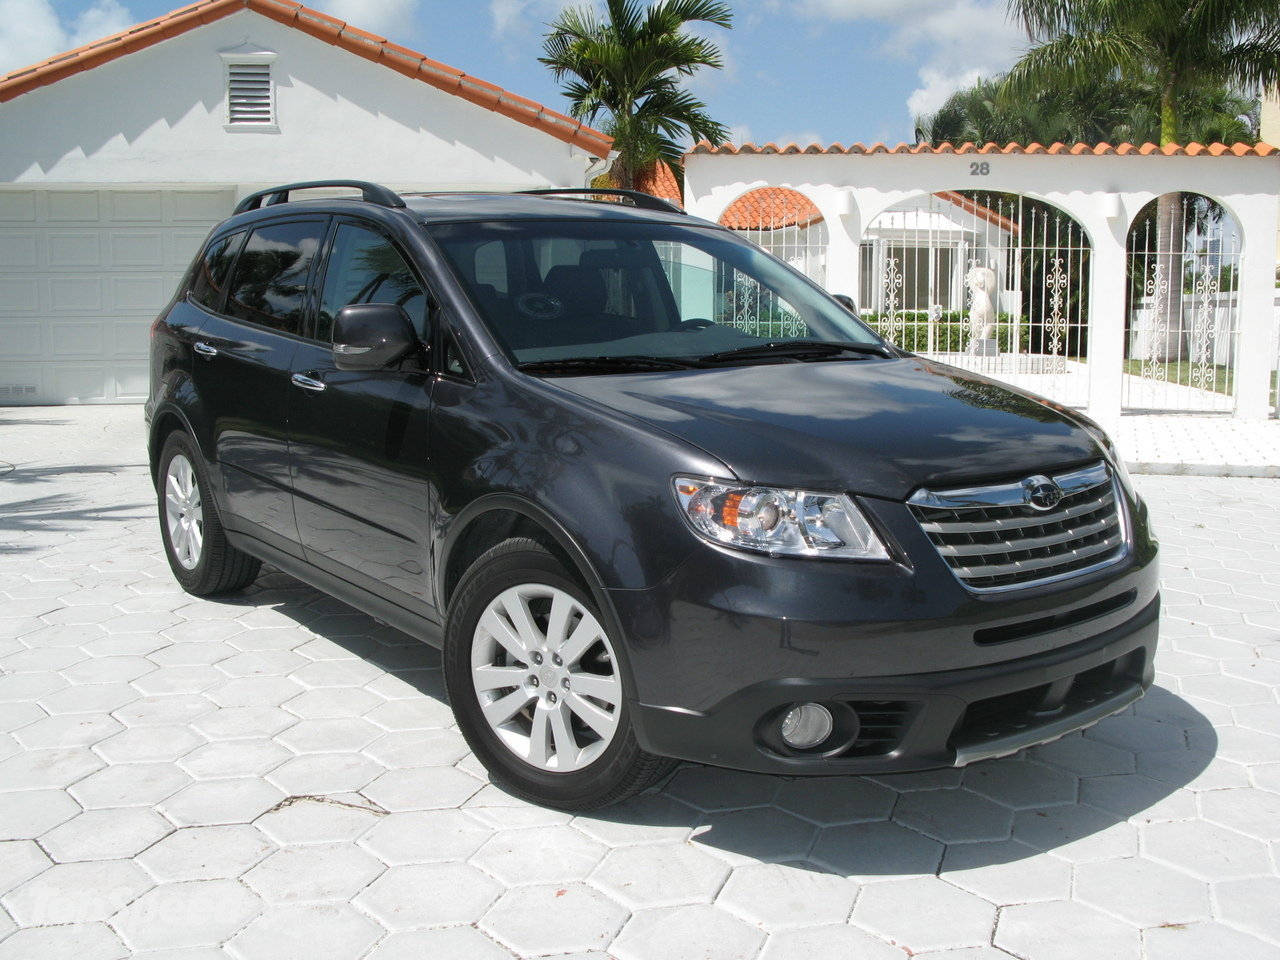 2008 subaru tribeca information and photos zombiedrive. Black Bedroom Furniture Sets. Home Design Ideas